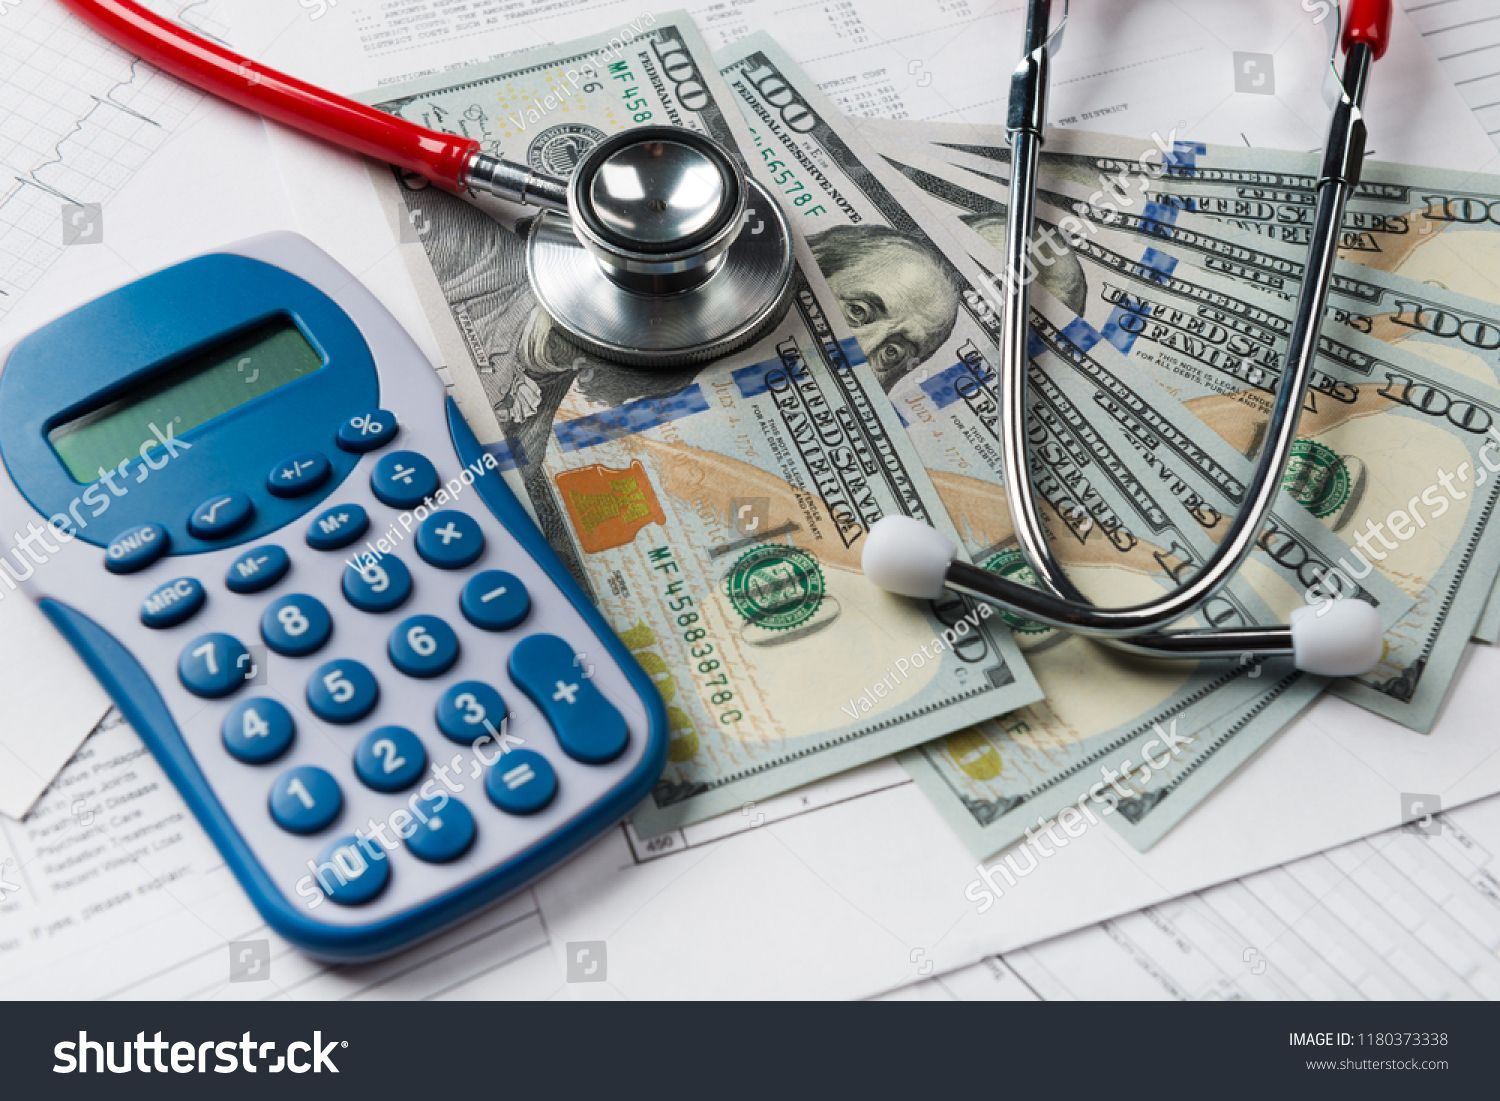 Health care costs stethoscope and calculator symbol for